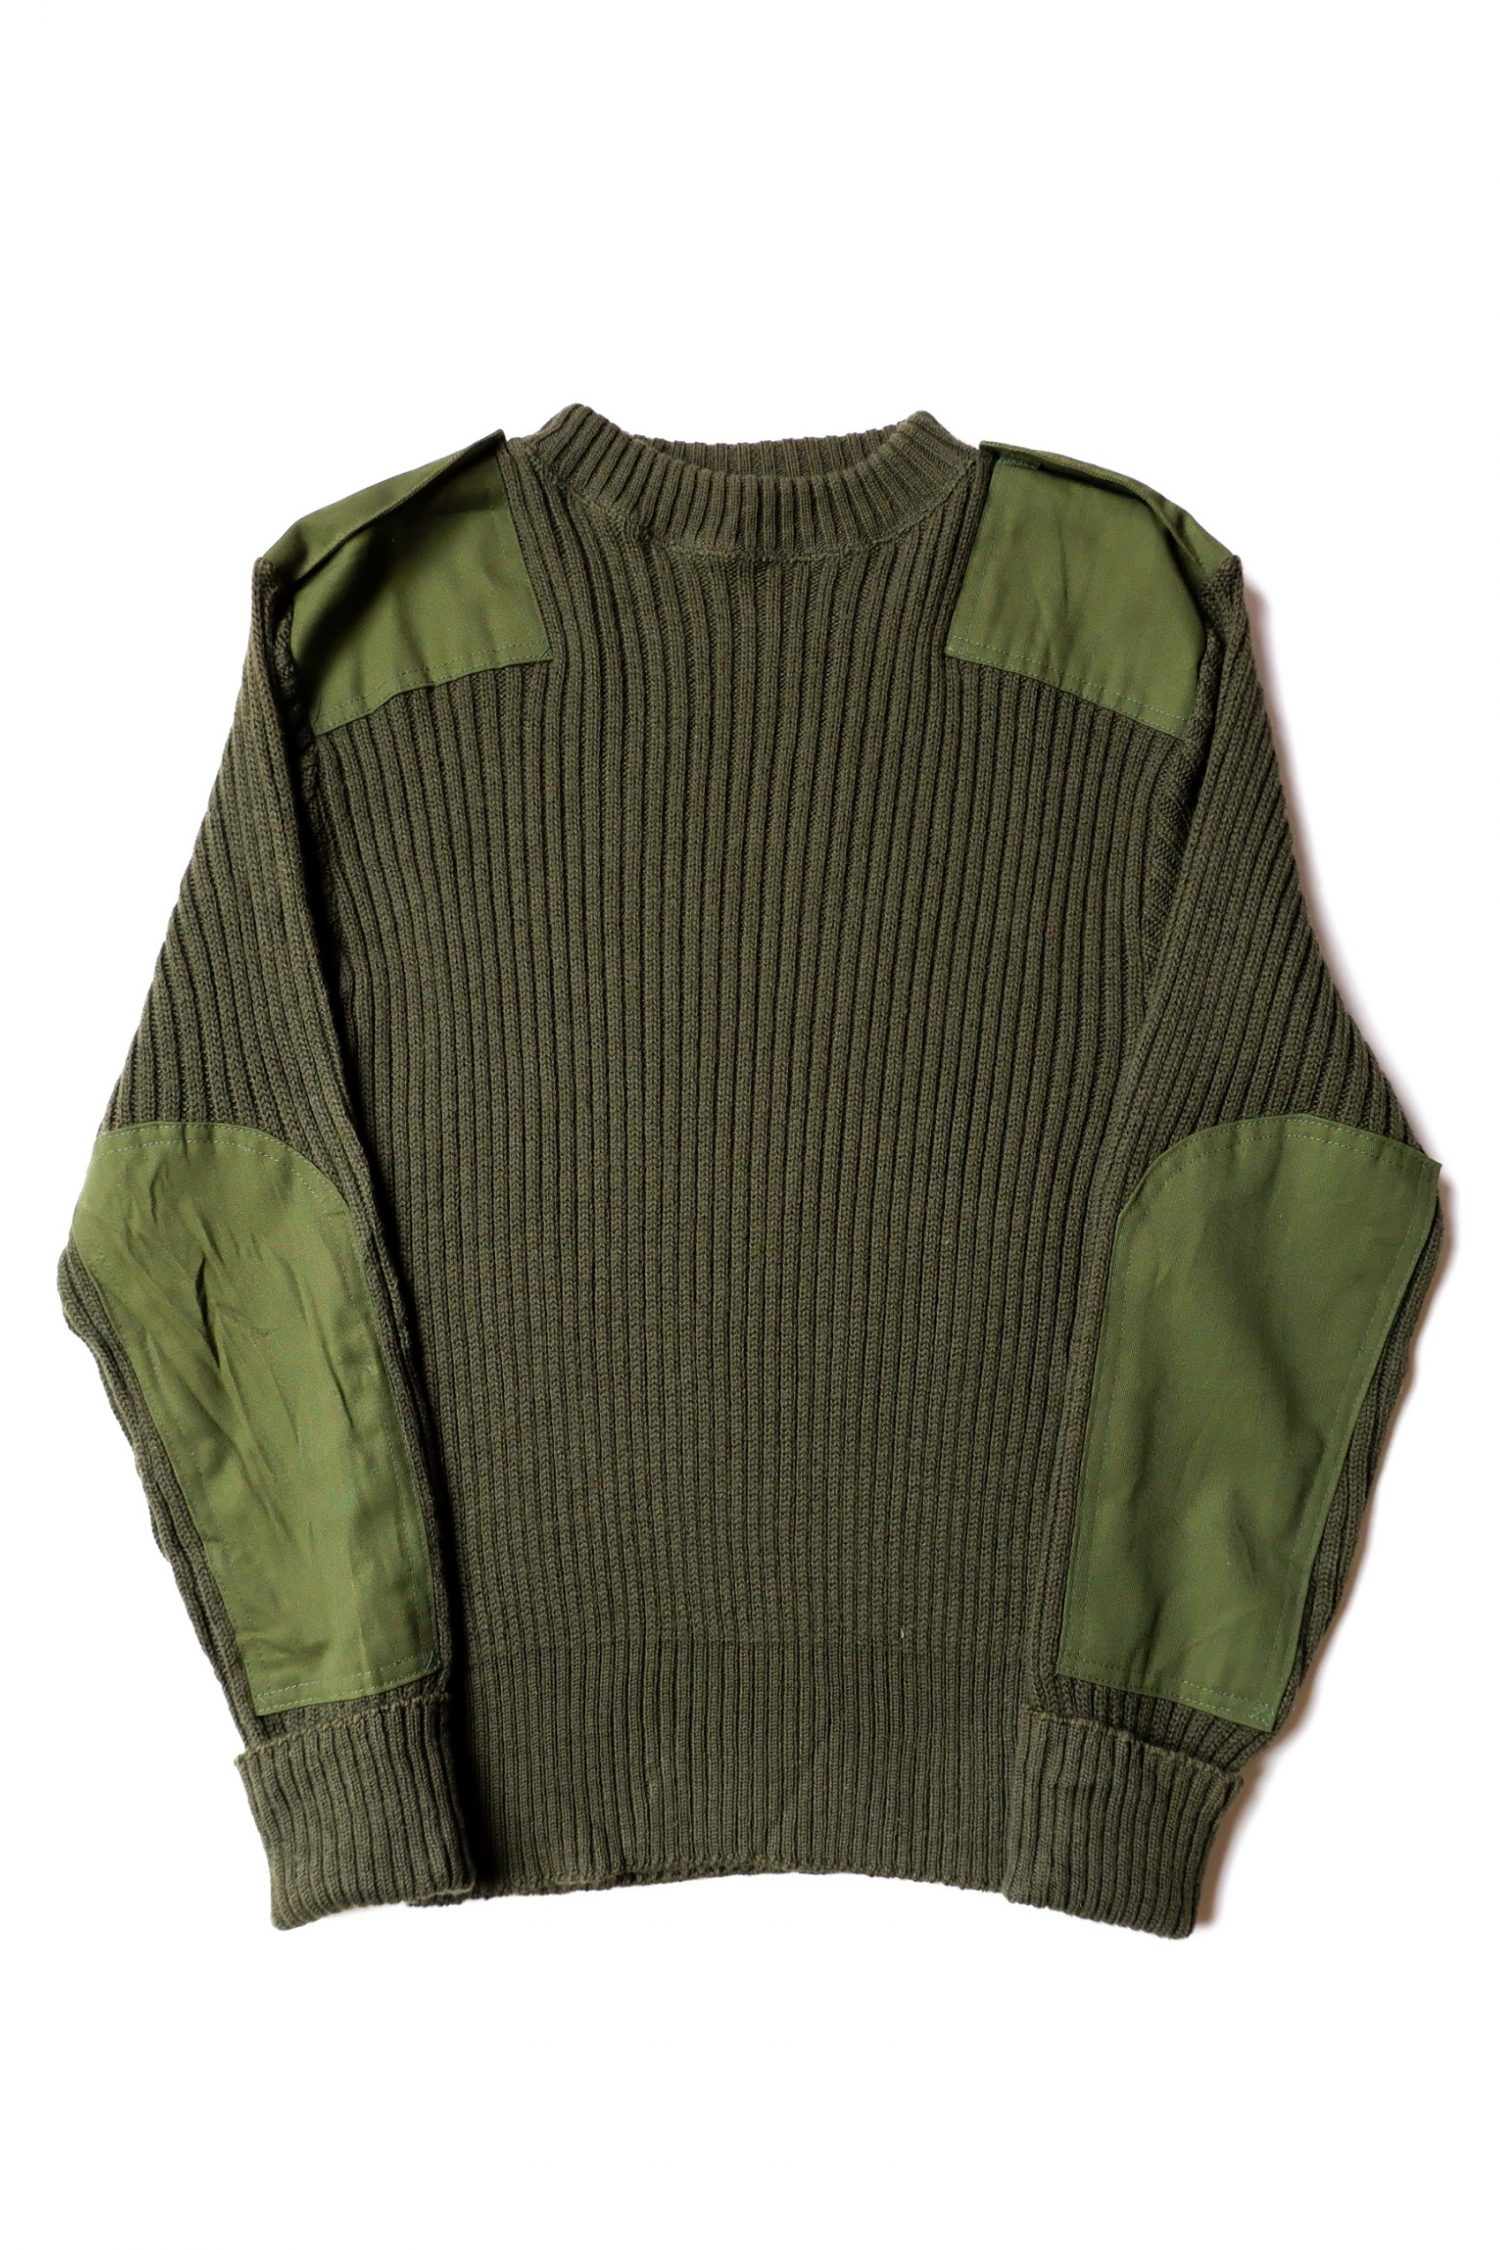 U.K Military Knited Sweater